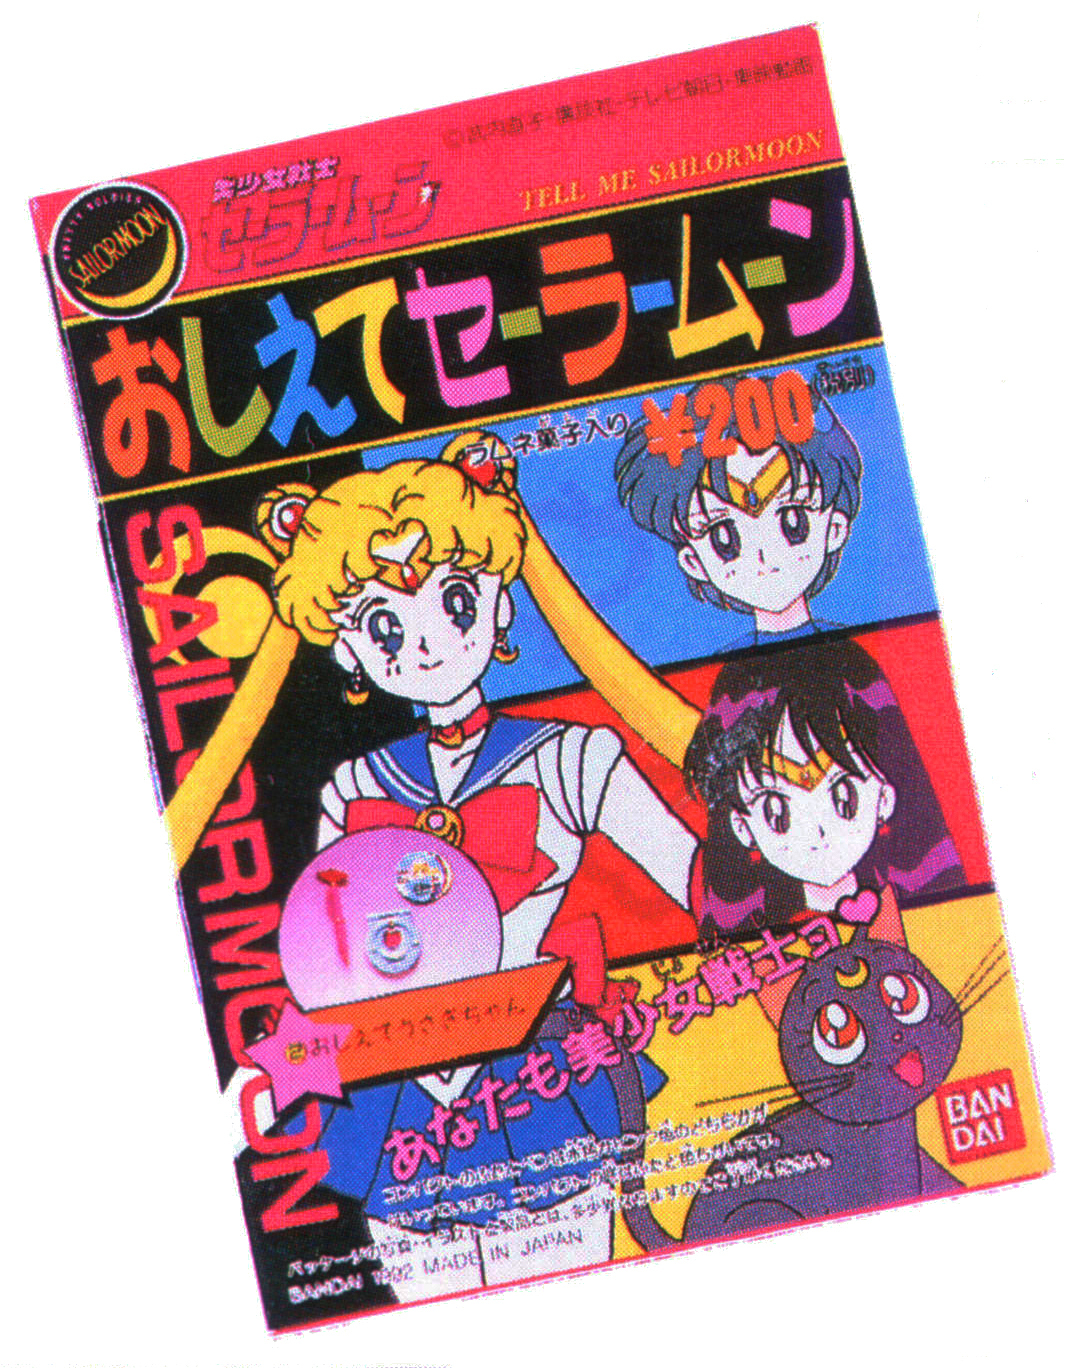 Sailor Moon merchandise: information card sold by Bandai